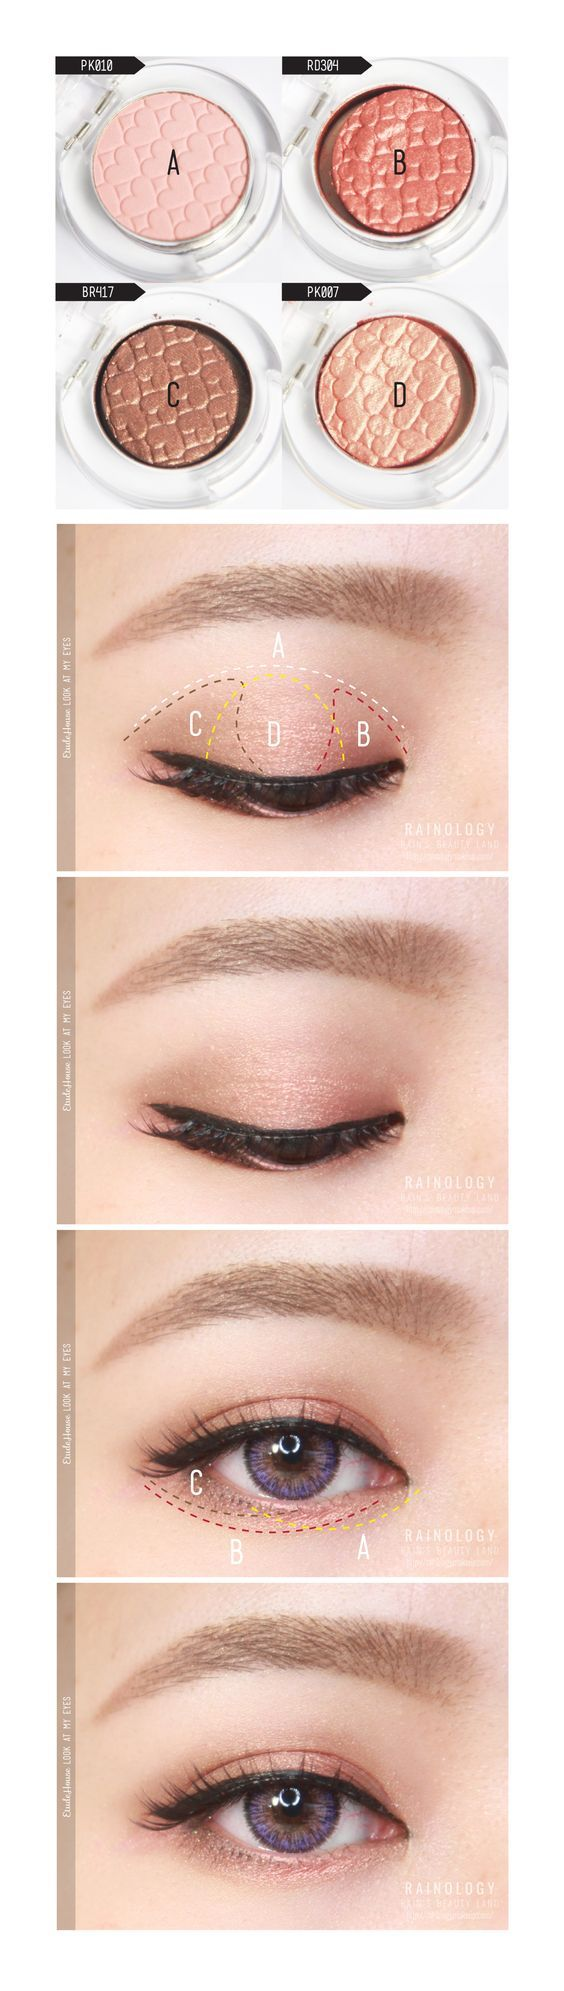 this step-by-step guide to applying eyeshadow makes your